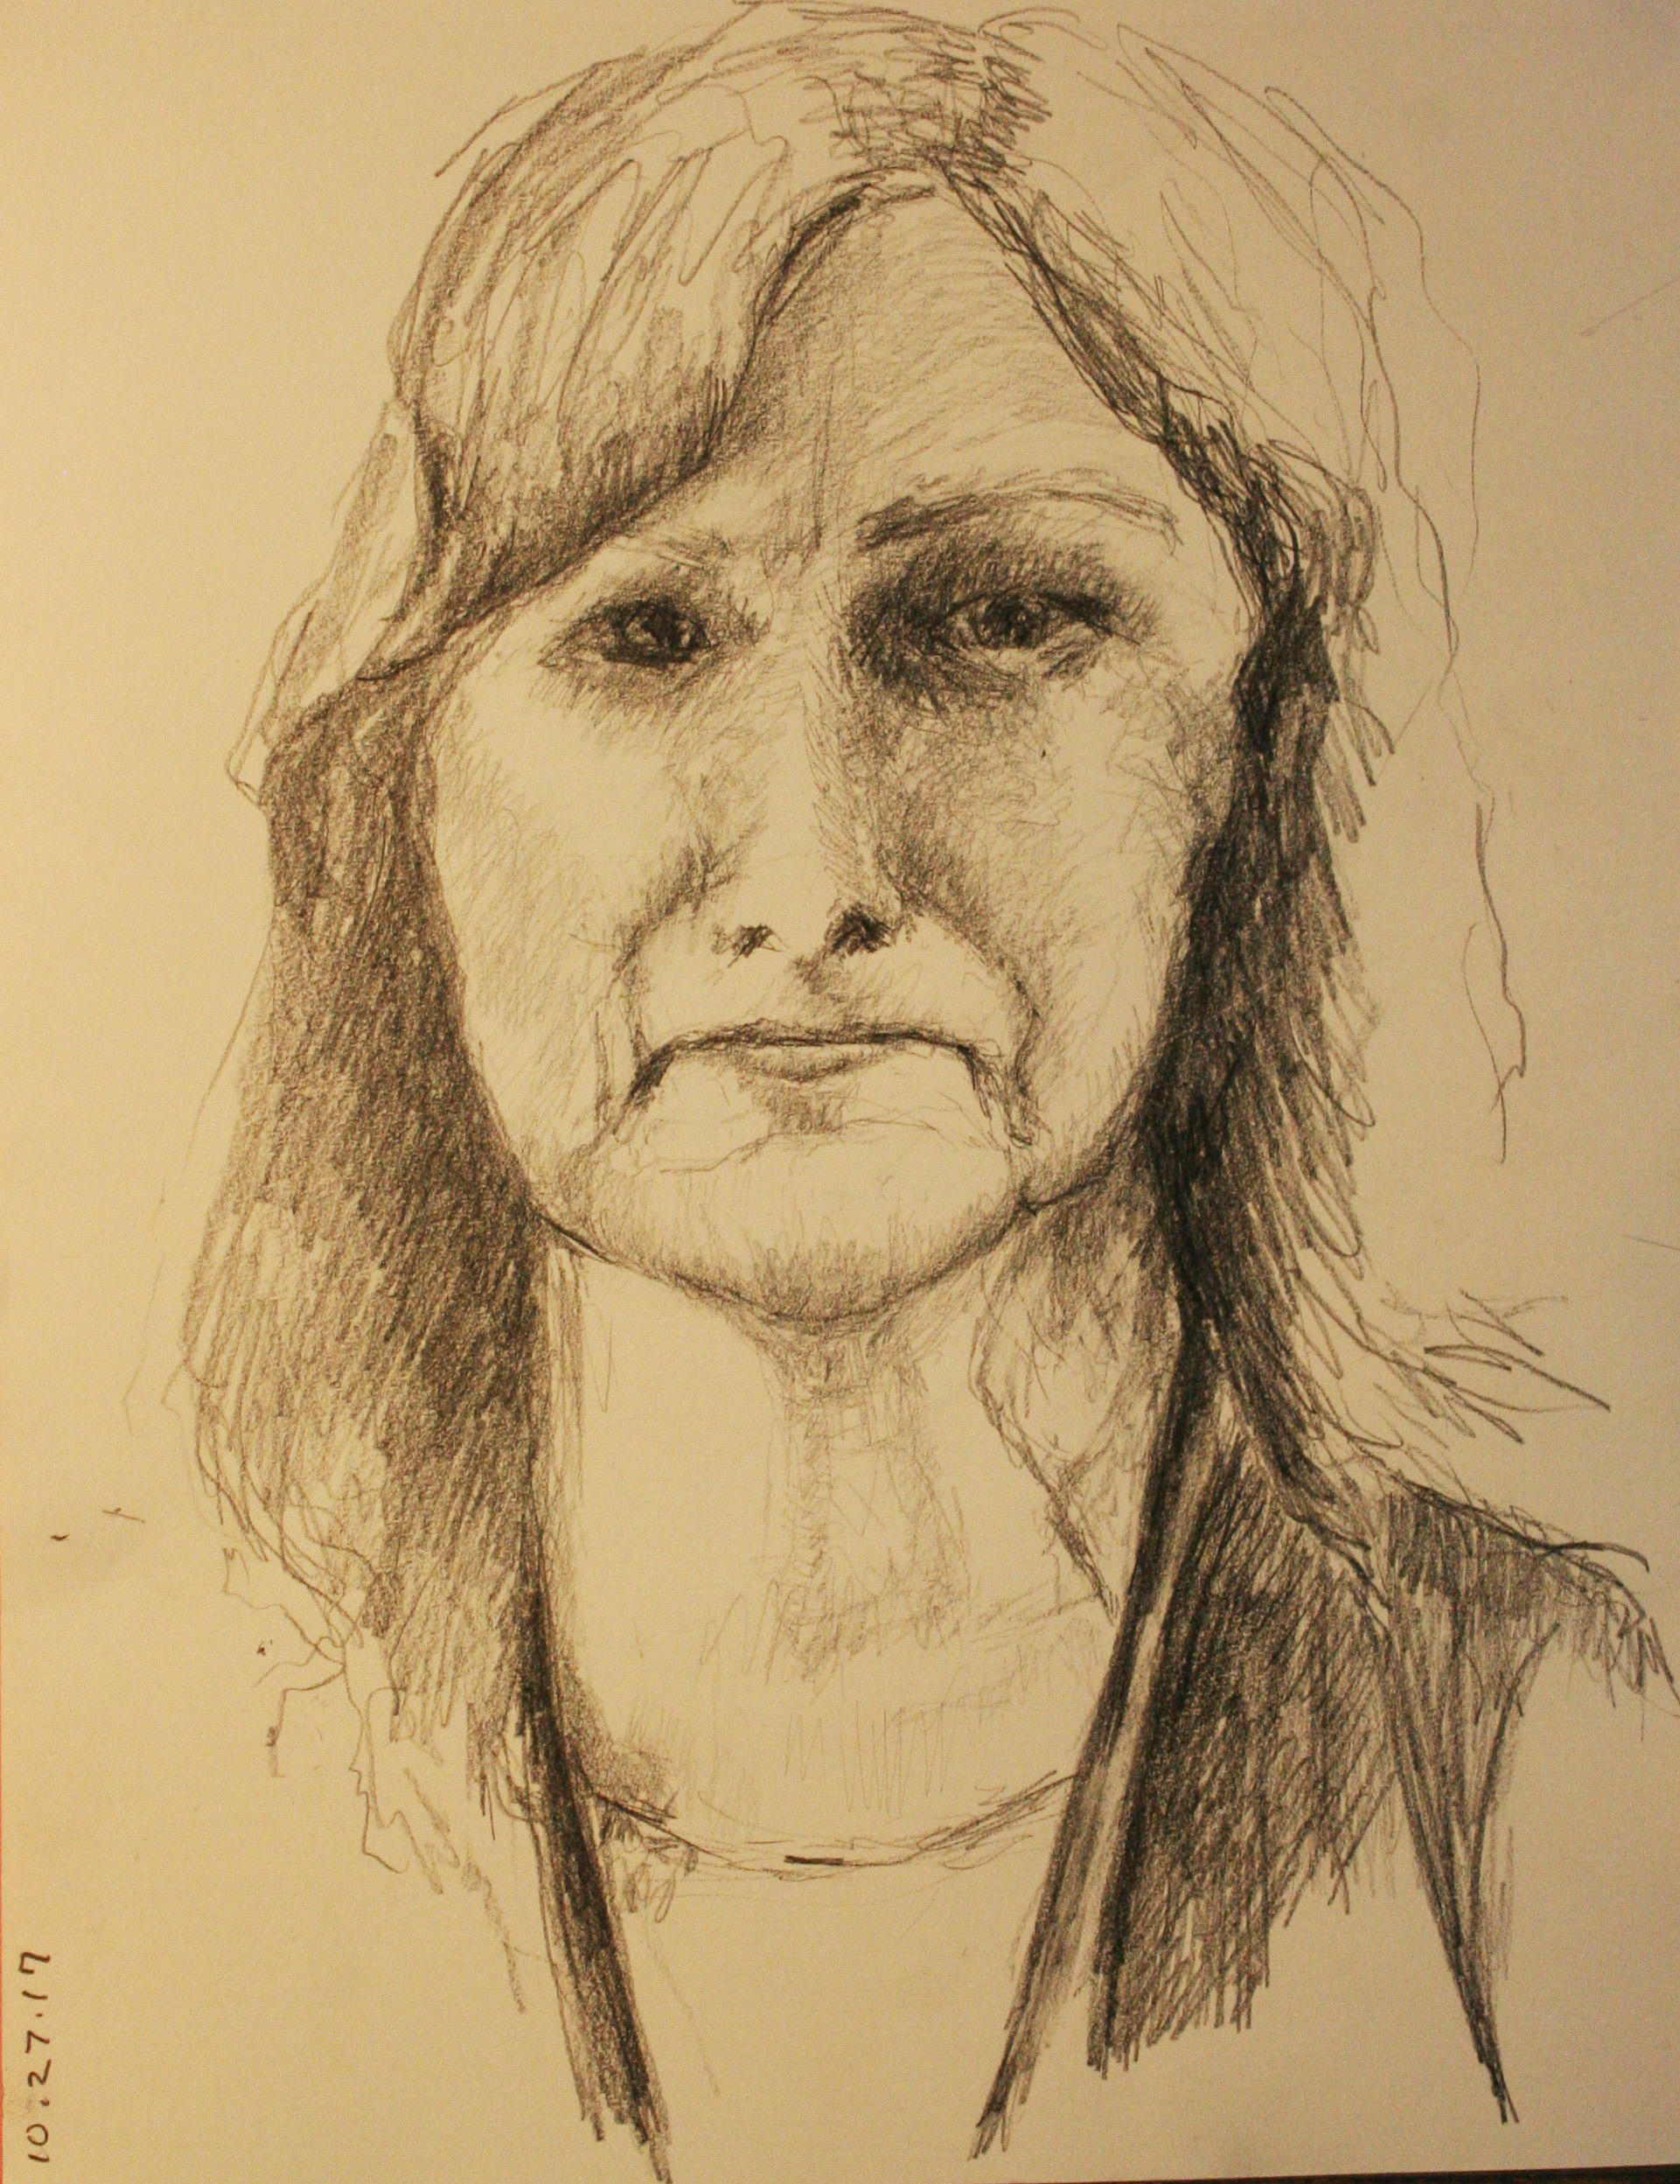 A woman named Ann? did this drawing.